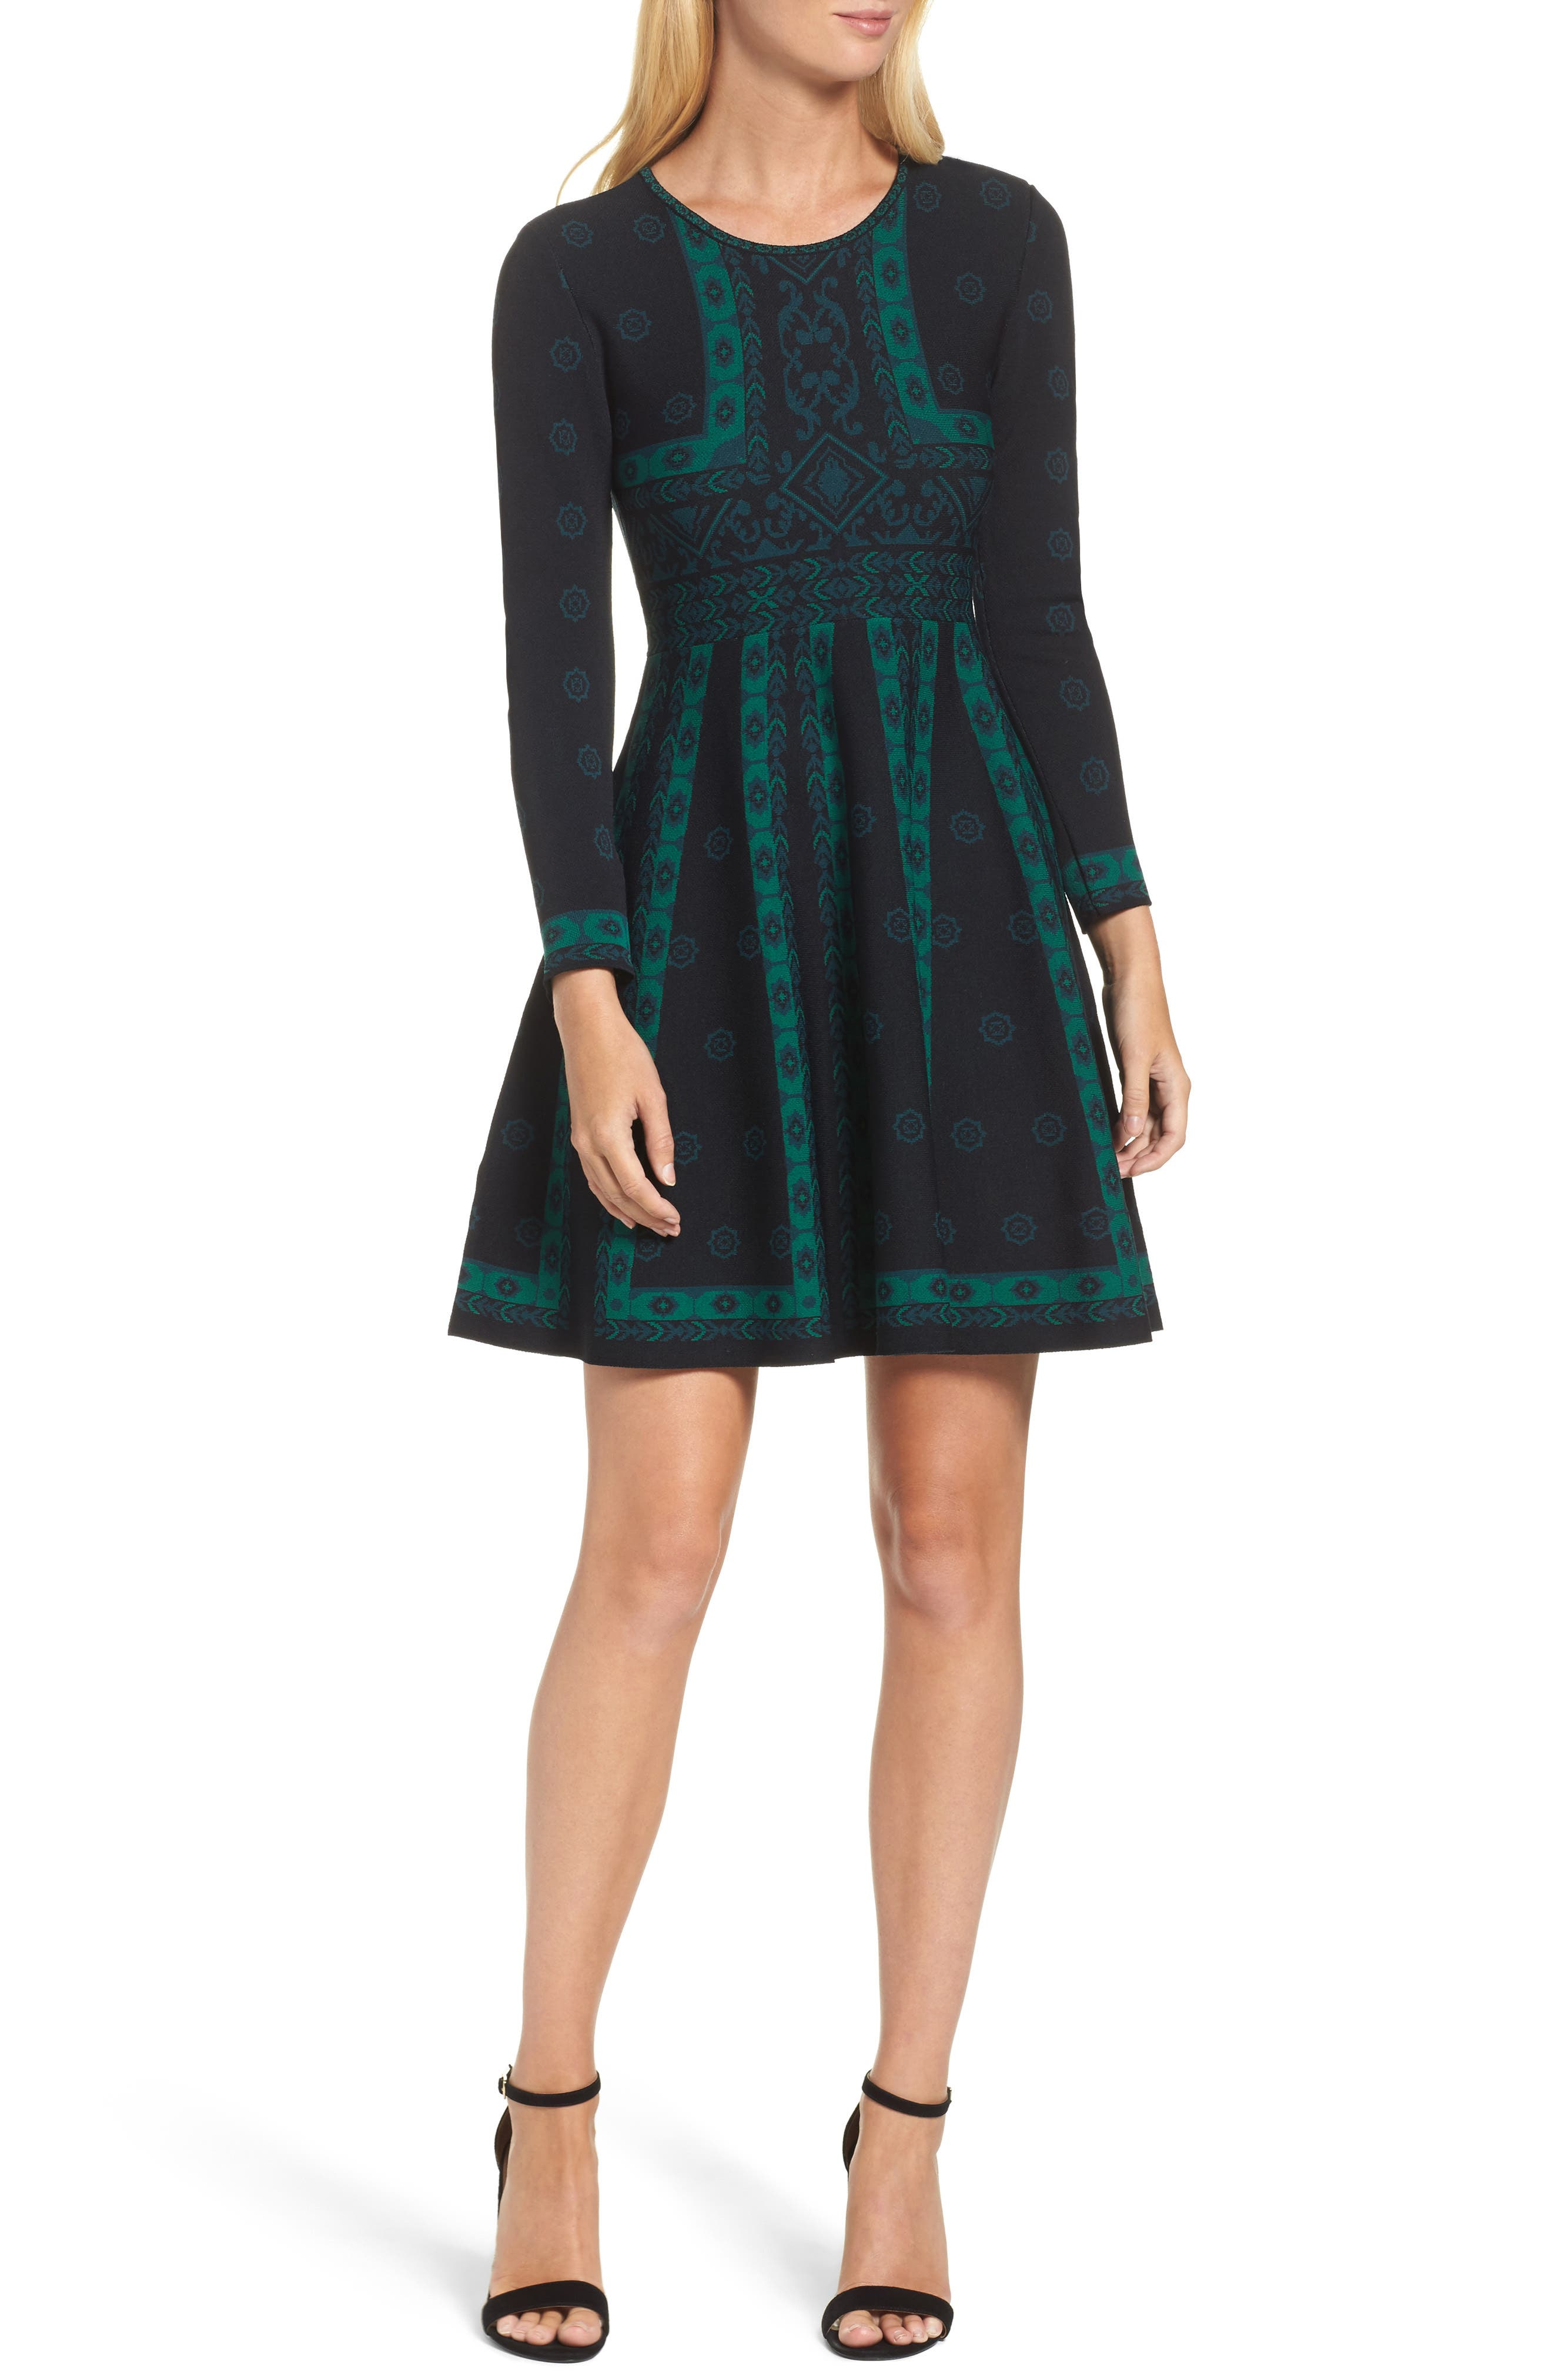 ELIZA J Pattern Double-Knit Fit & Flare Dress